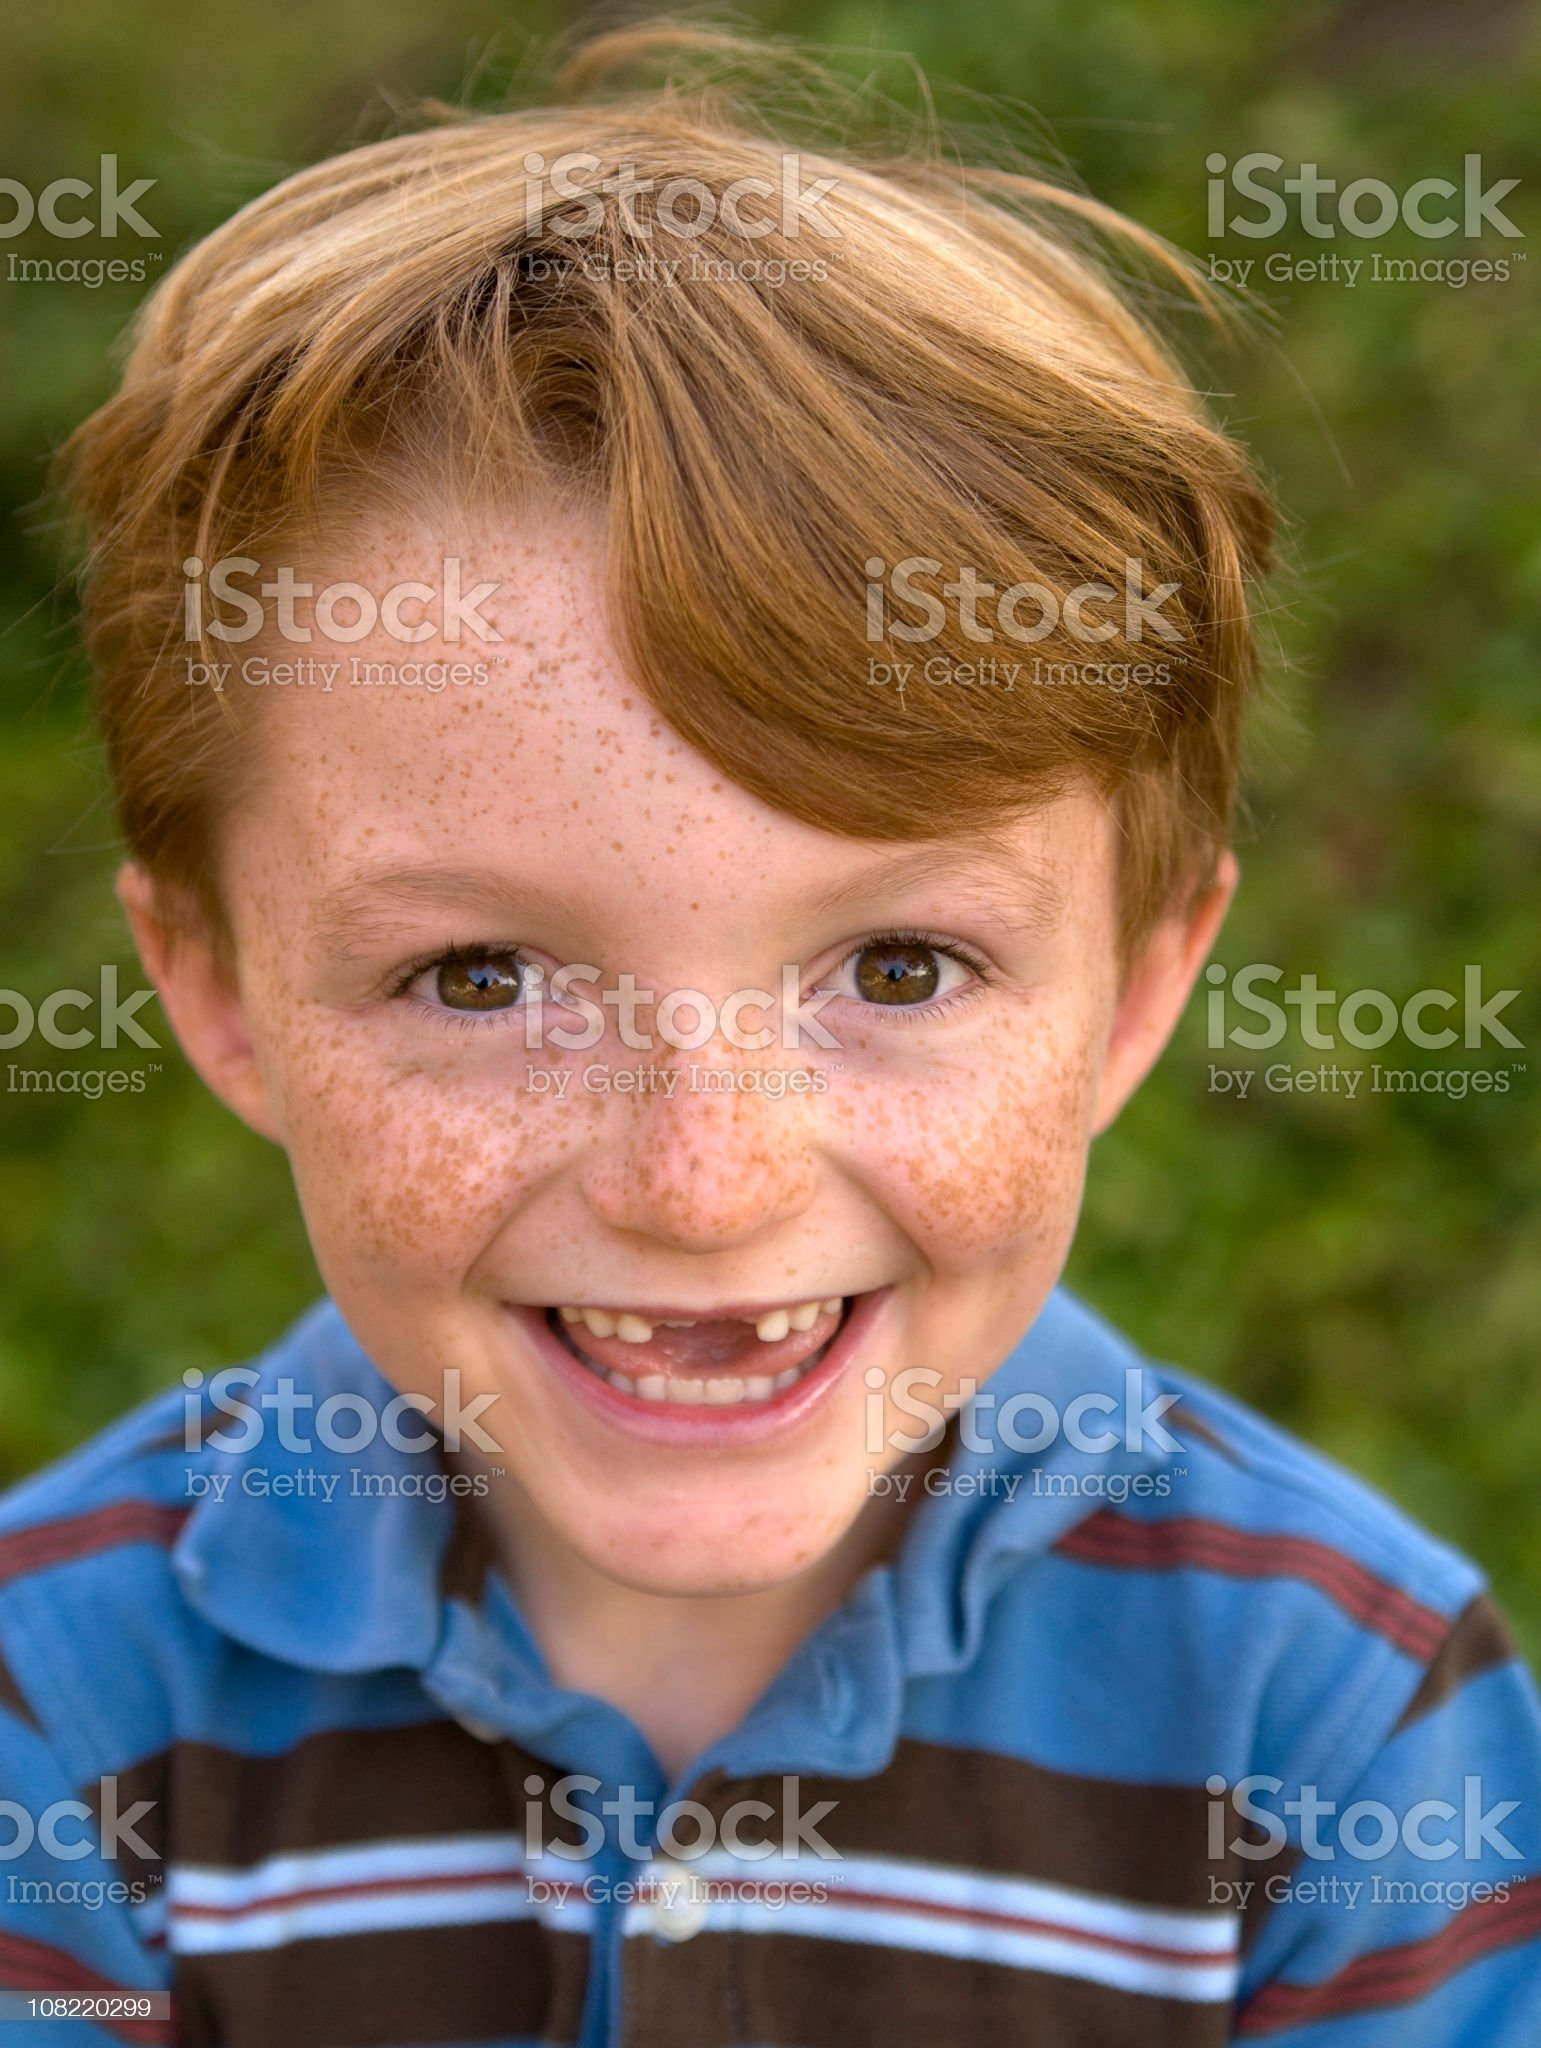 Boy Redhead Freckle Face Laughing, Child Smiling with Missing Teeth royalty-free stock photo